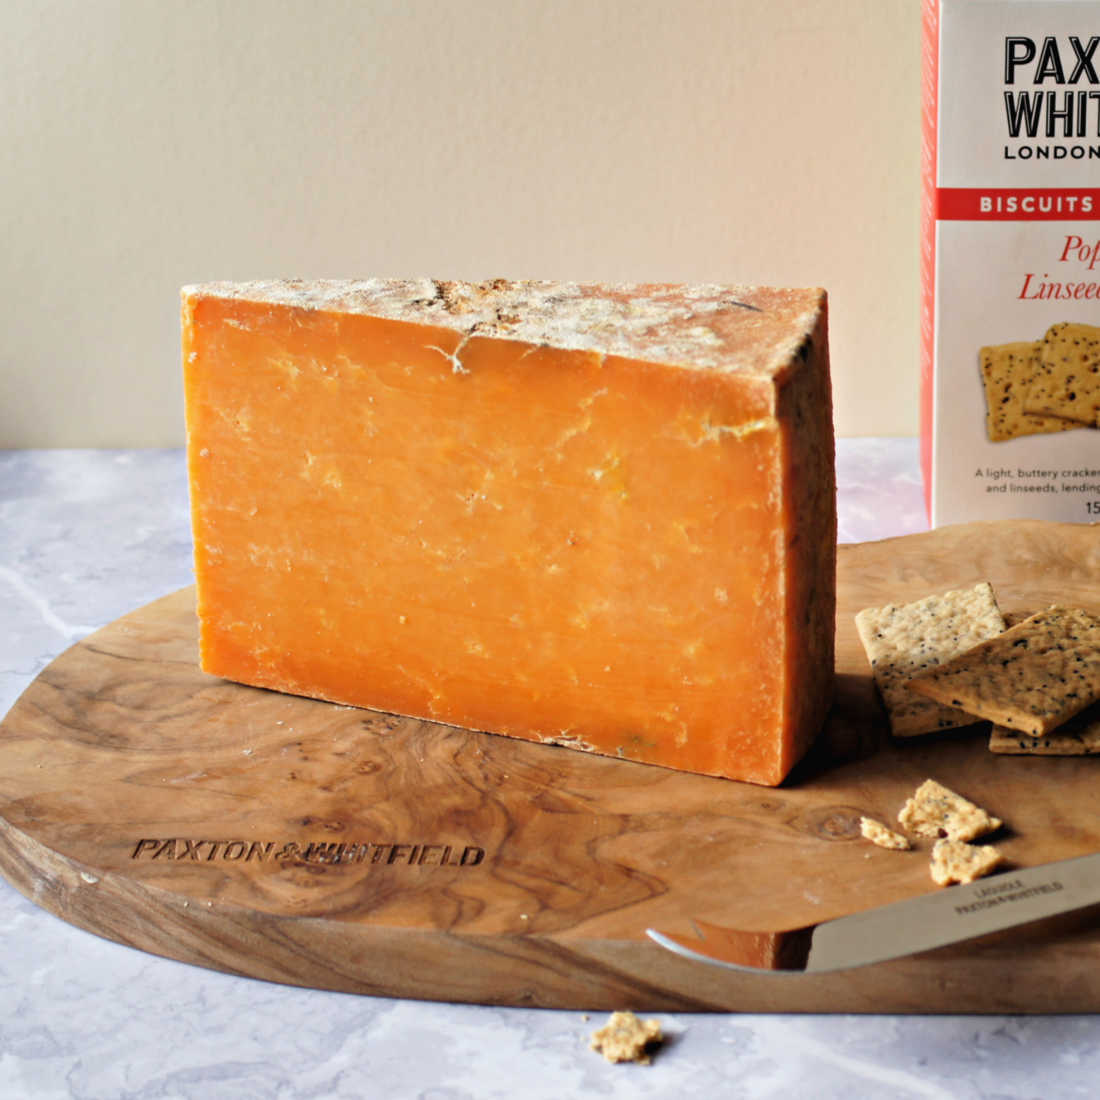 593-Sparkenhoe-Red-Leicester-Cheese-Low-Res-Web-Main